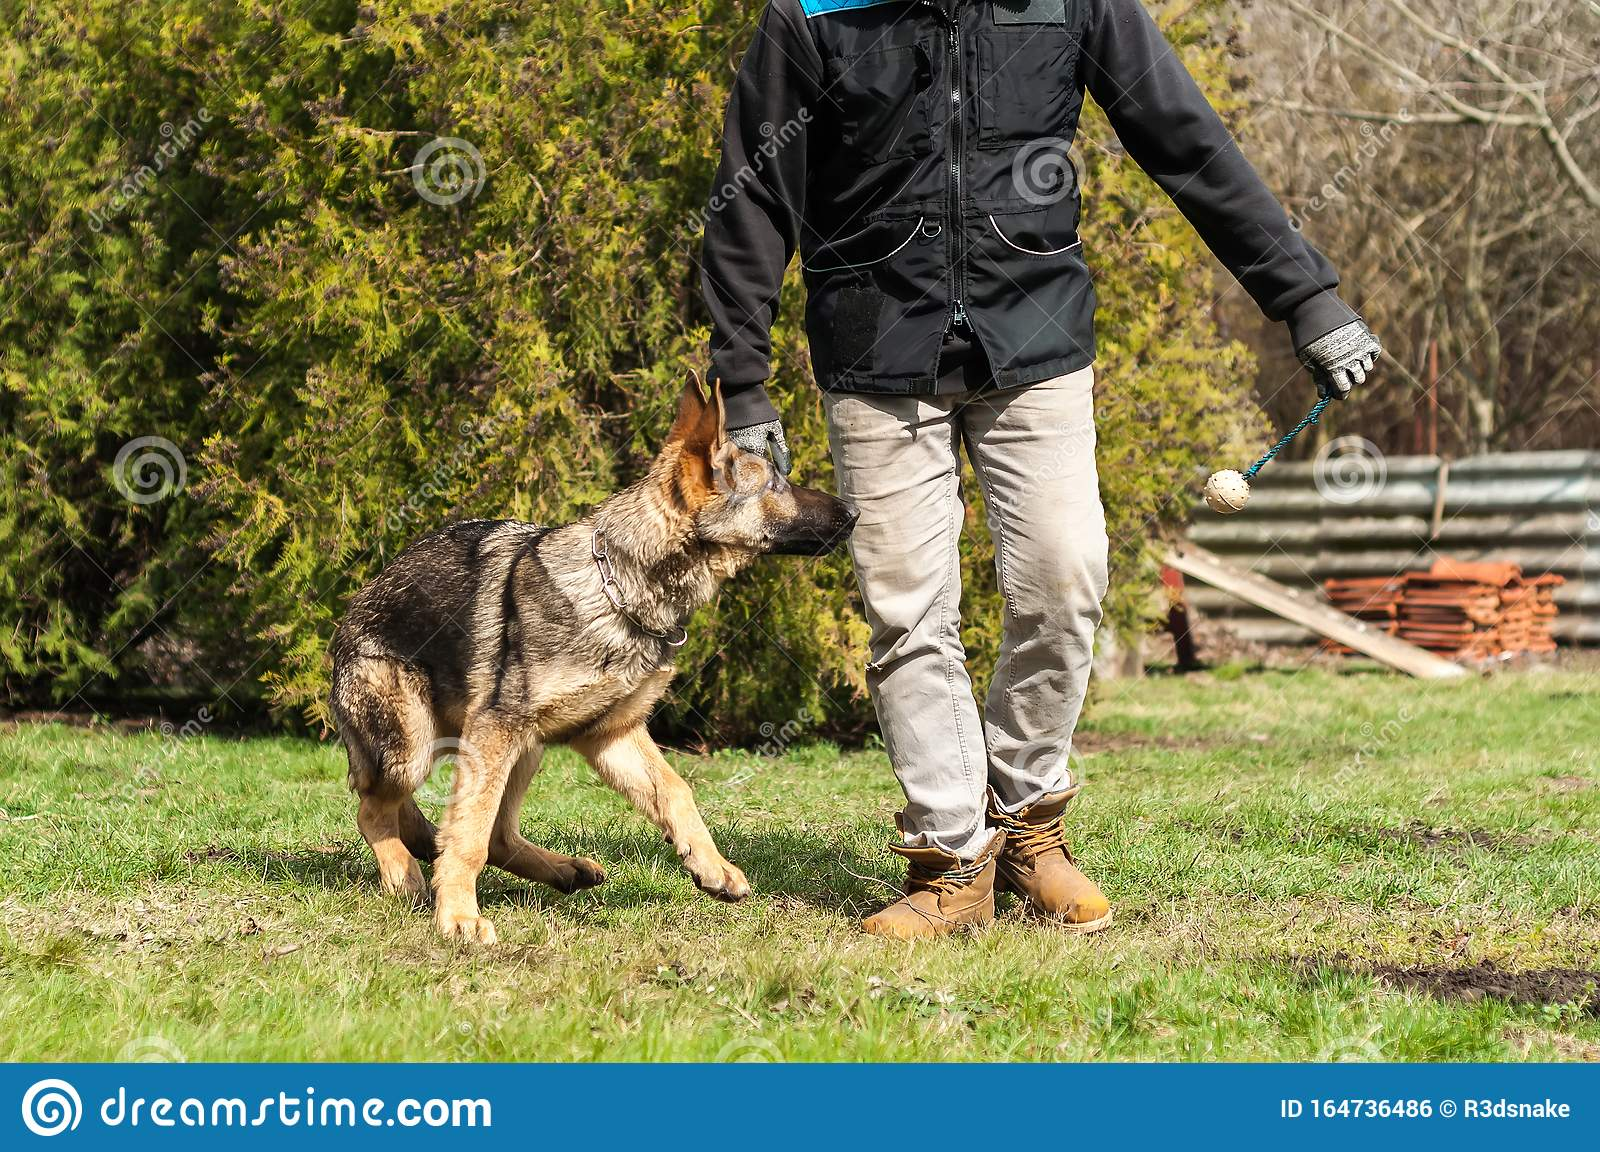 German Shepherd Puppy Training With A Ball Stock Photo Image Of Male Green 164736486